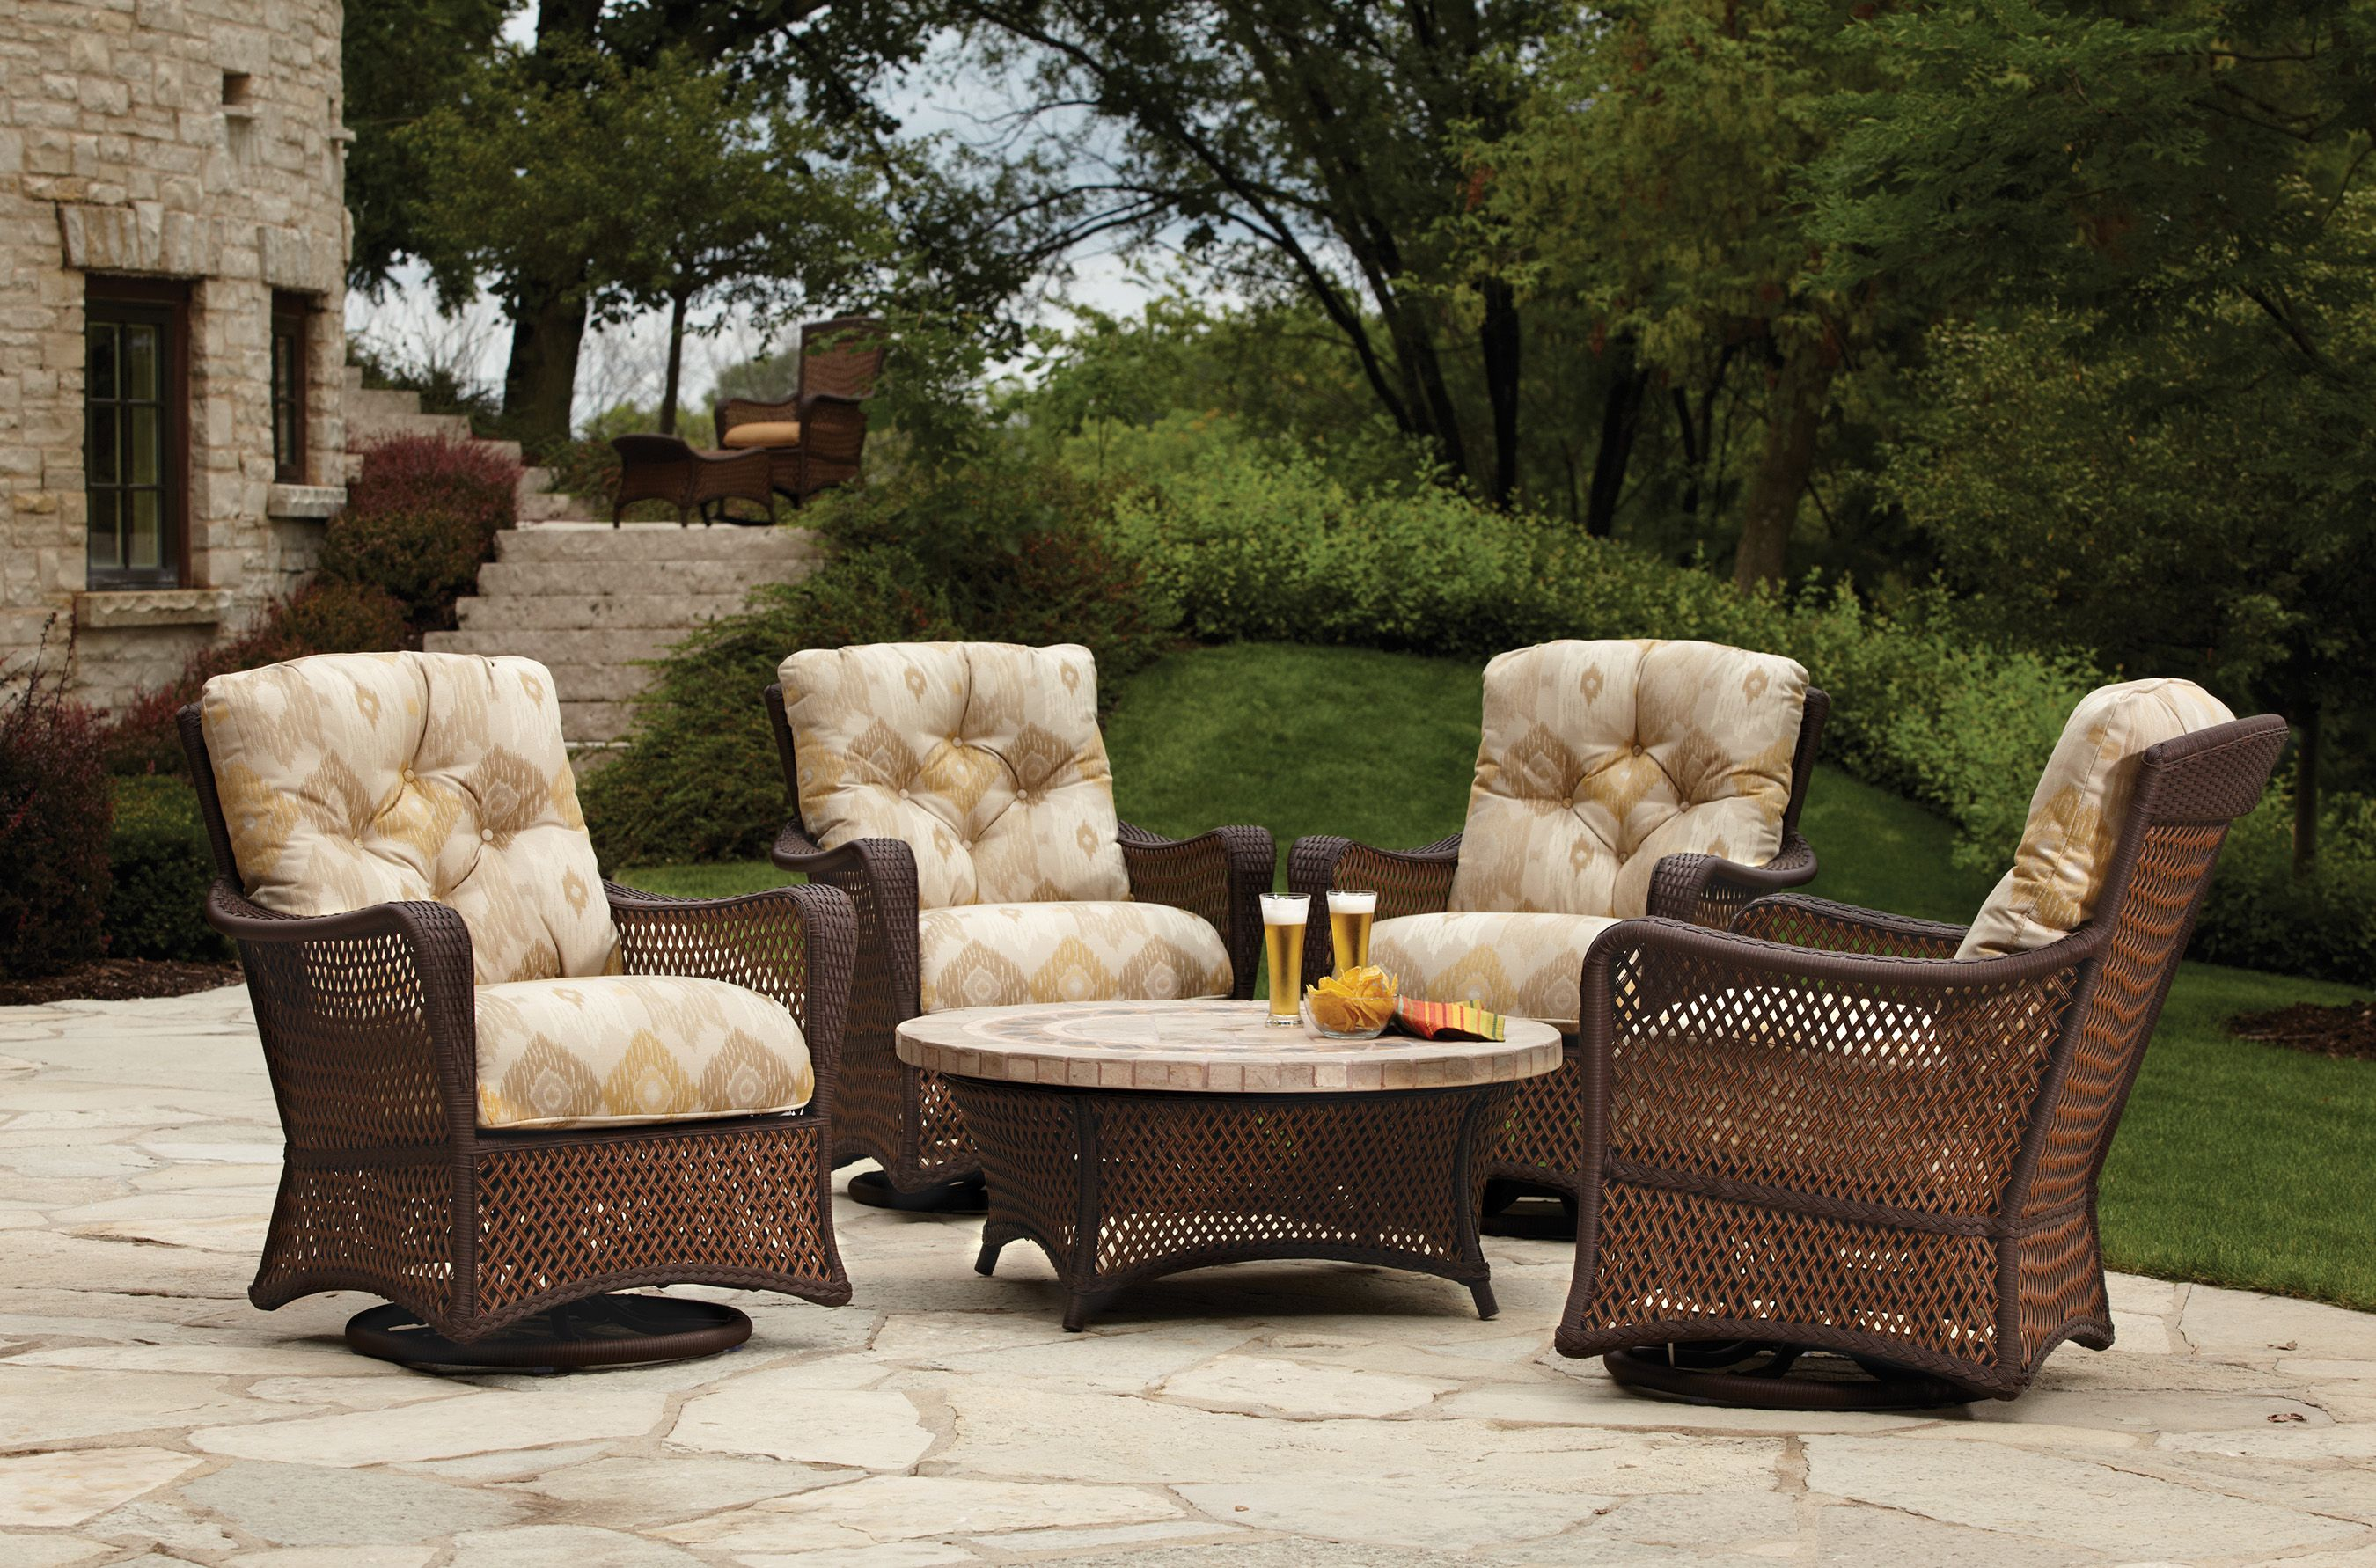 Lloyd Flanders Grand Traverse Wicker Patio Furniture Chat Group